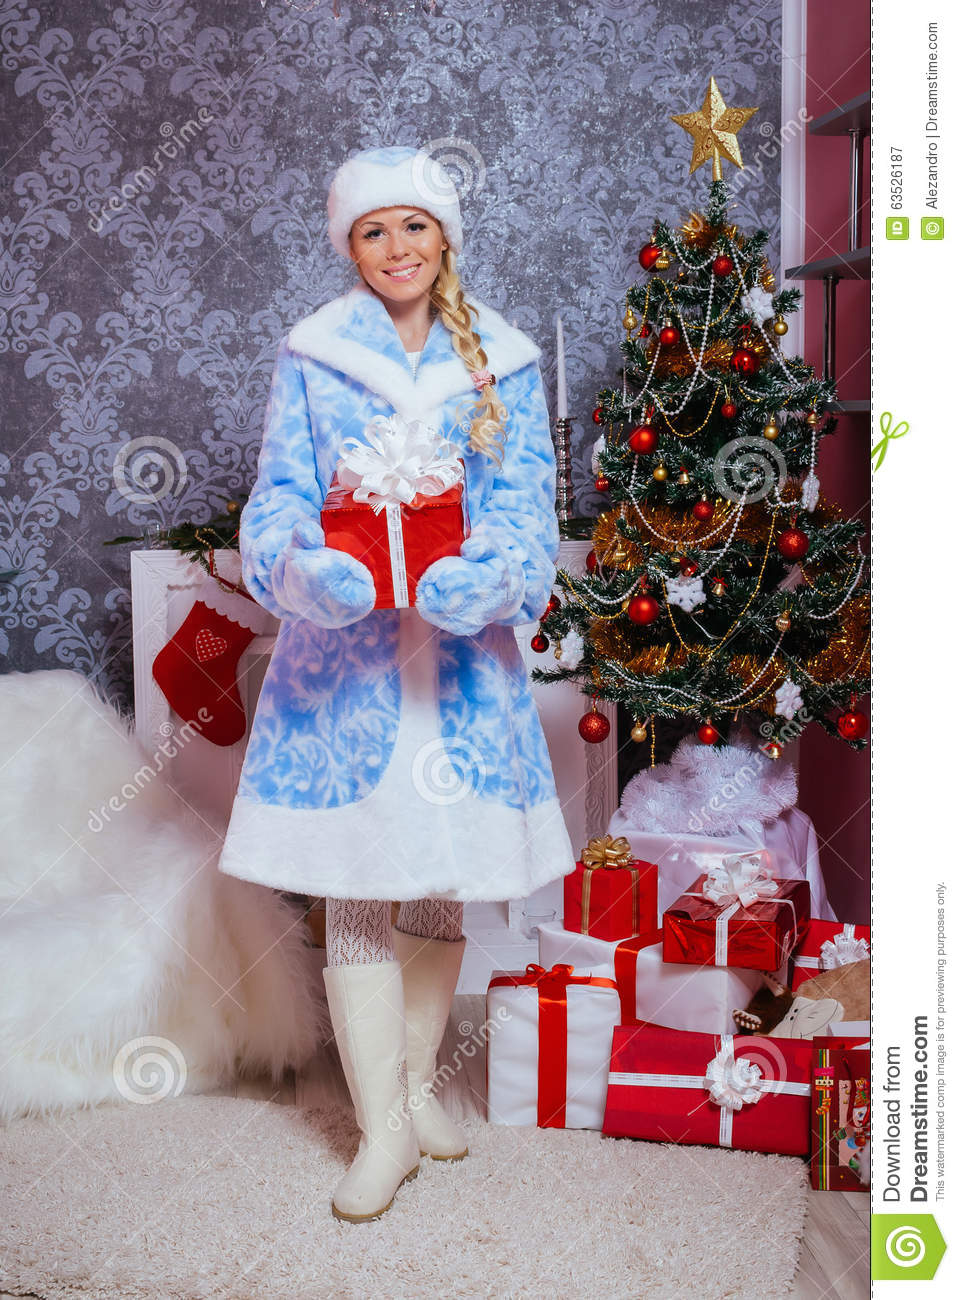 Christmas Tree With Gifts Clipart